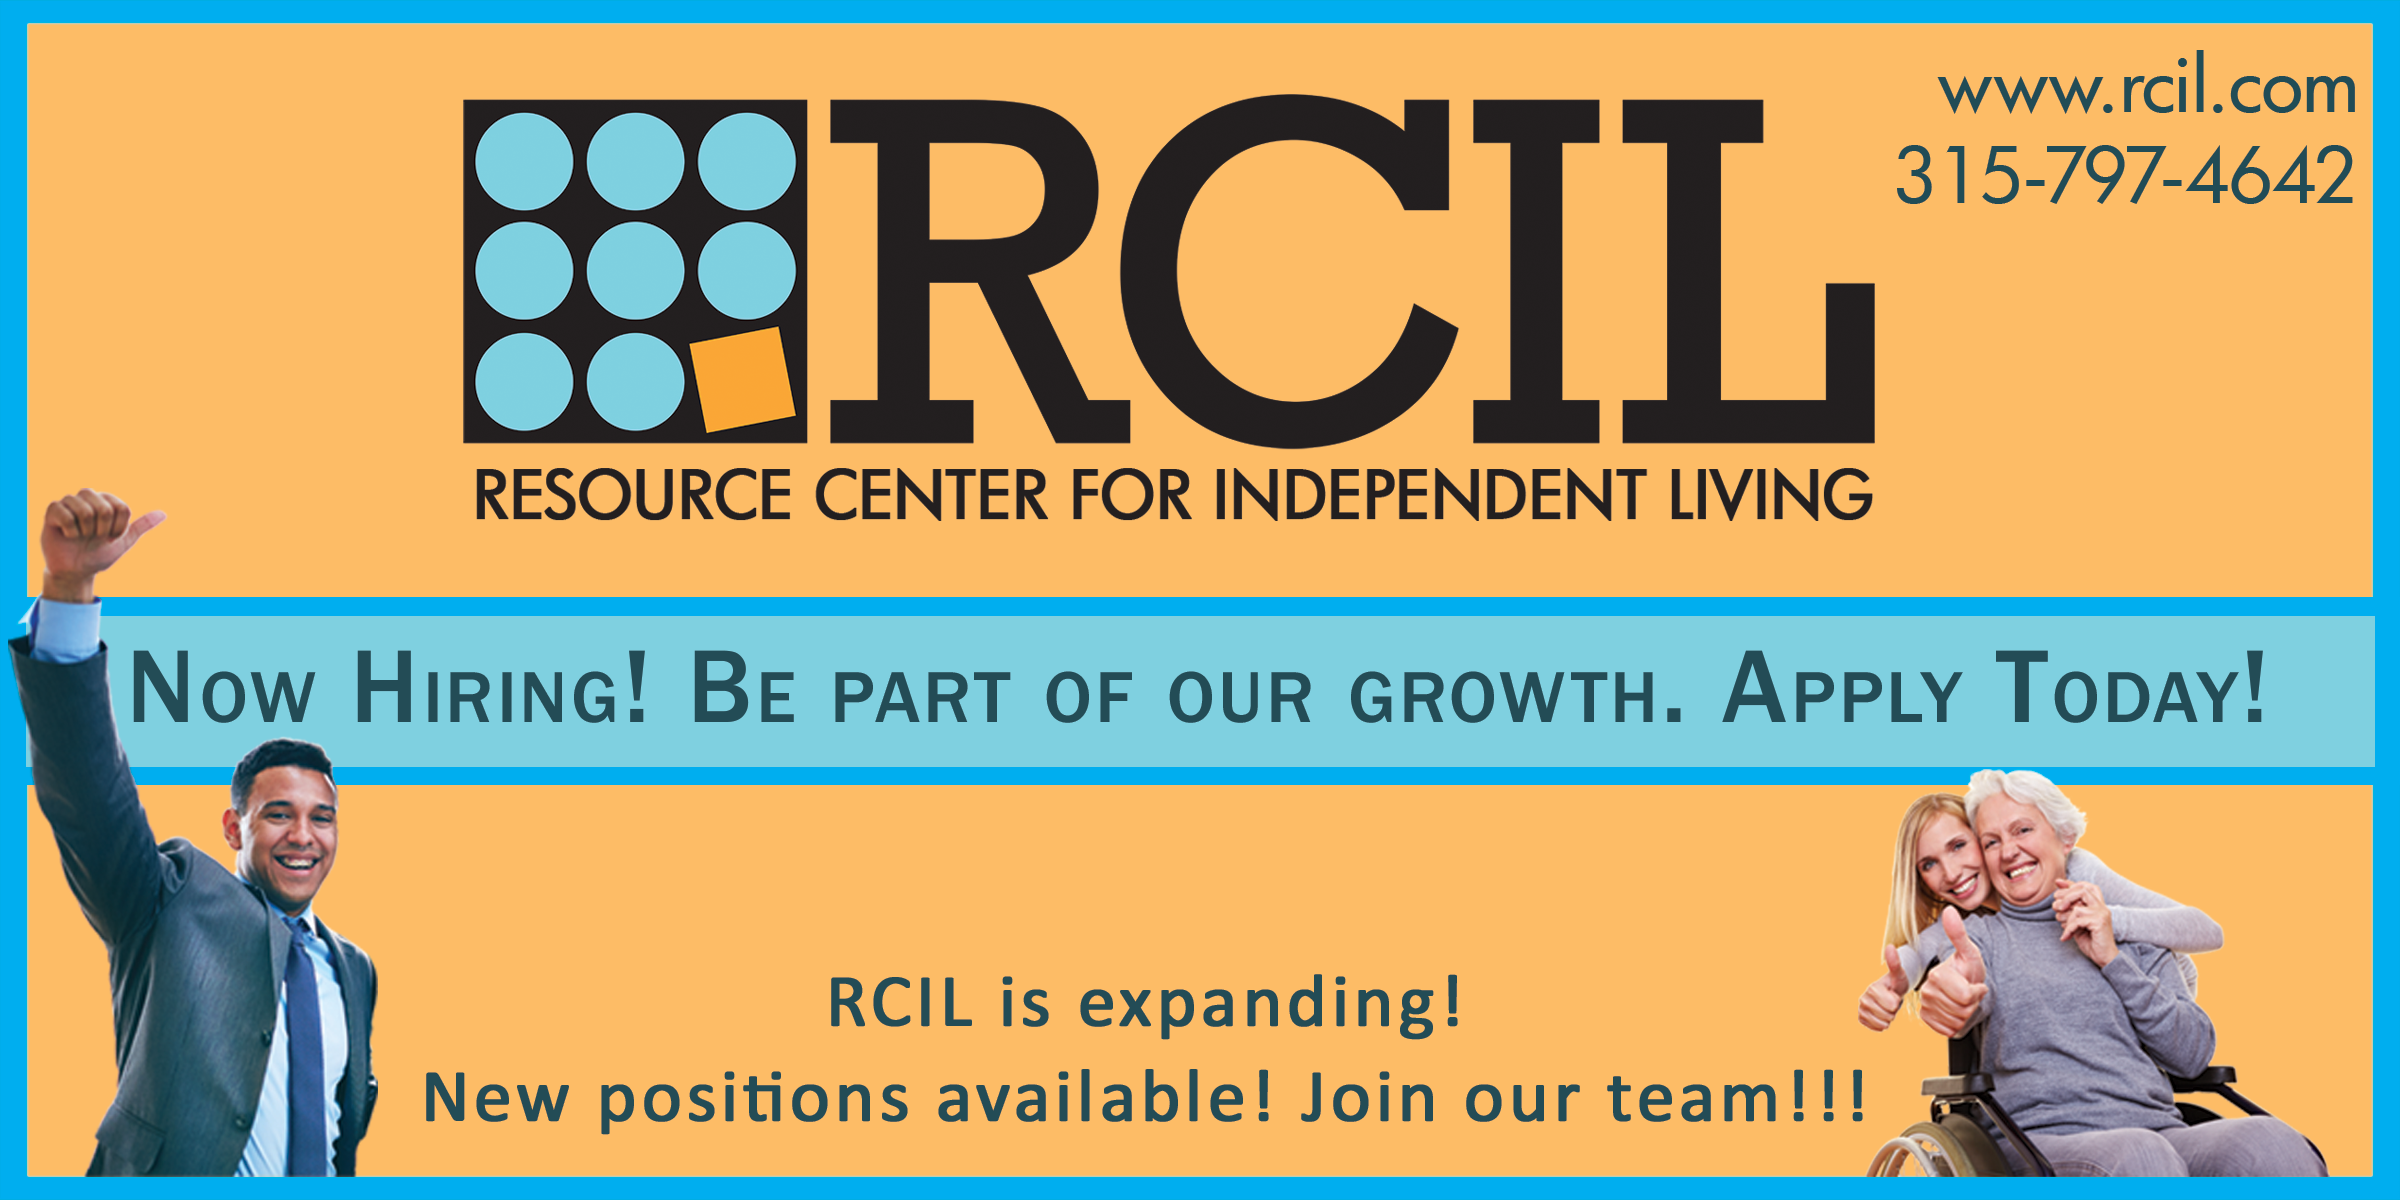 Careers & Job Openings | Resource Center, Independent Living